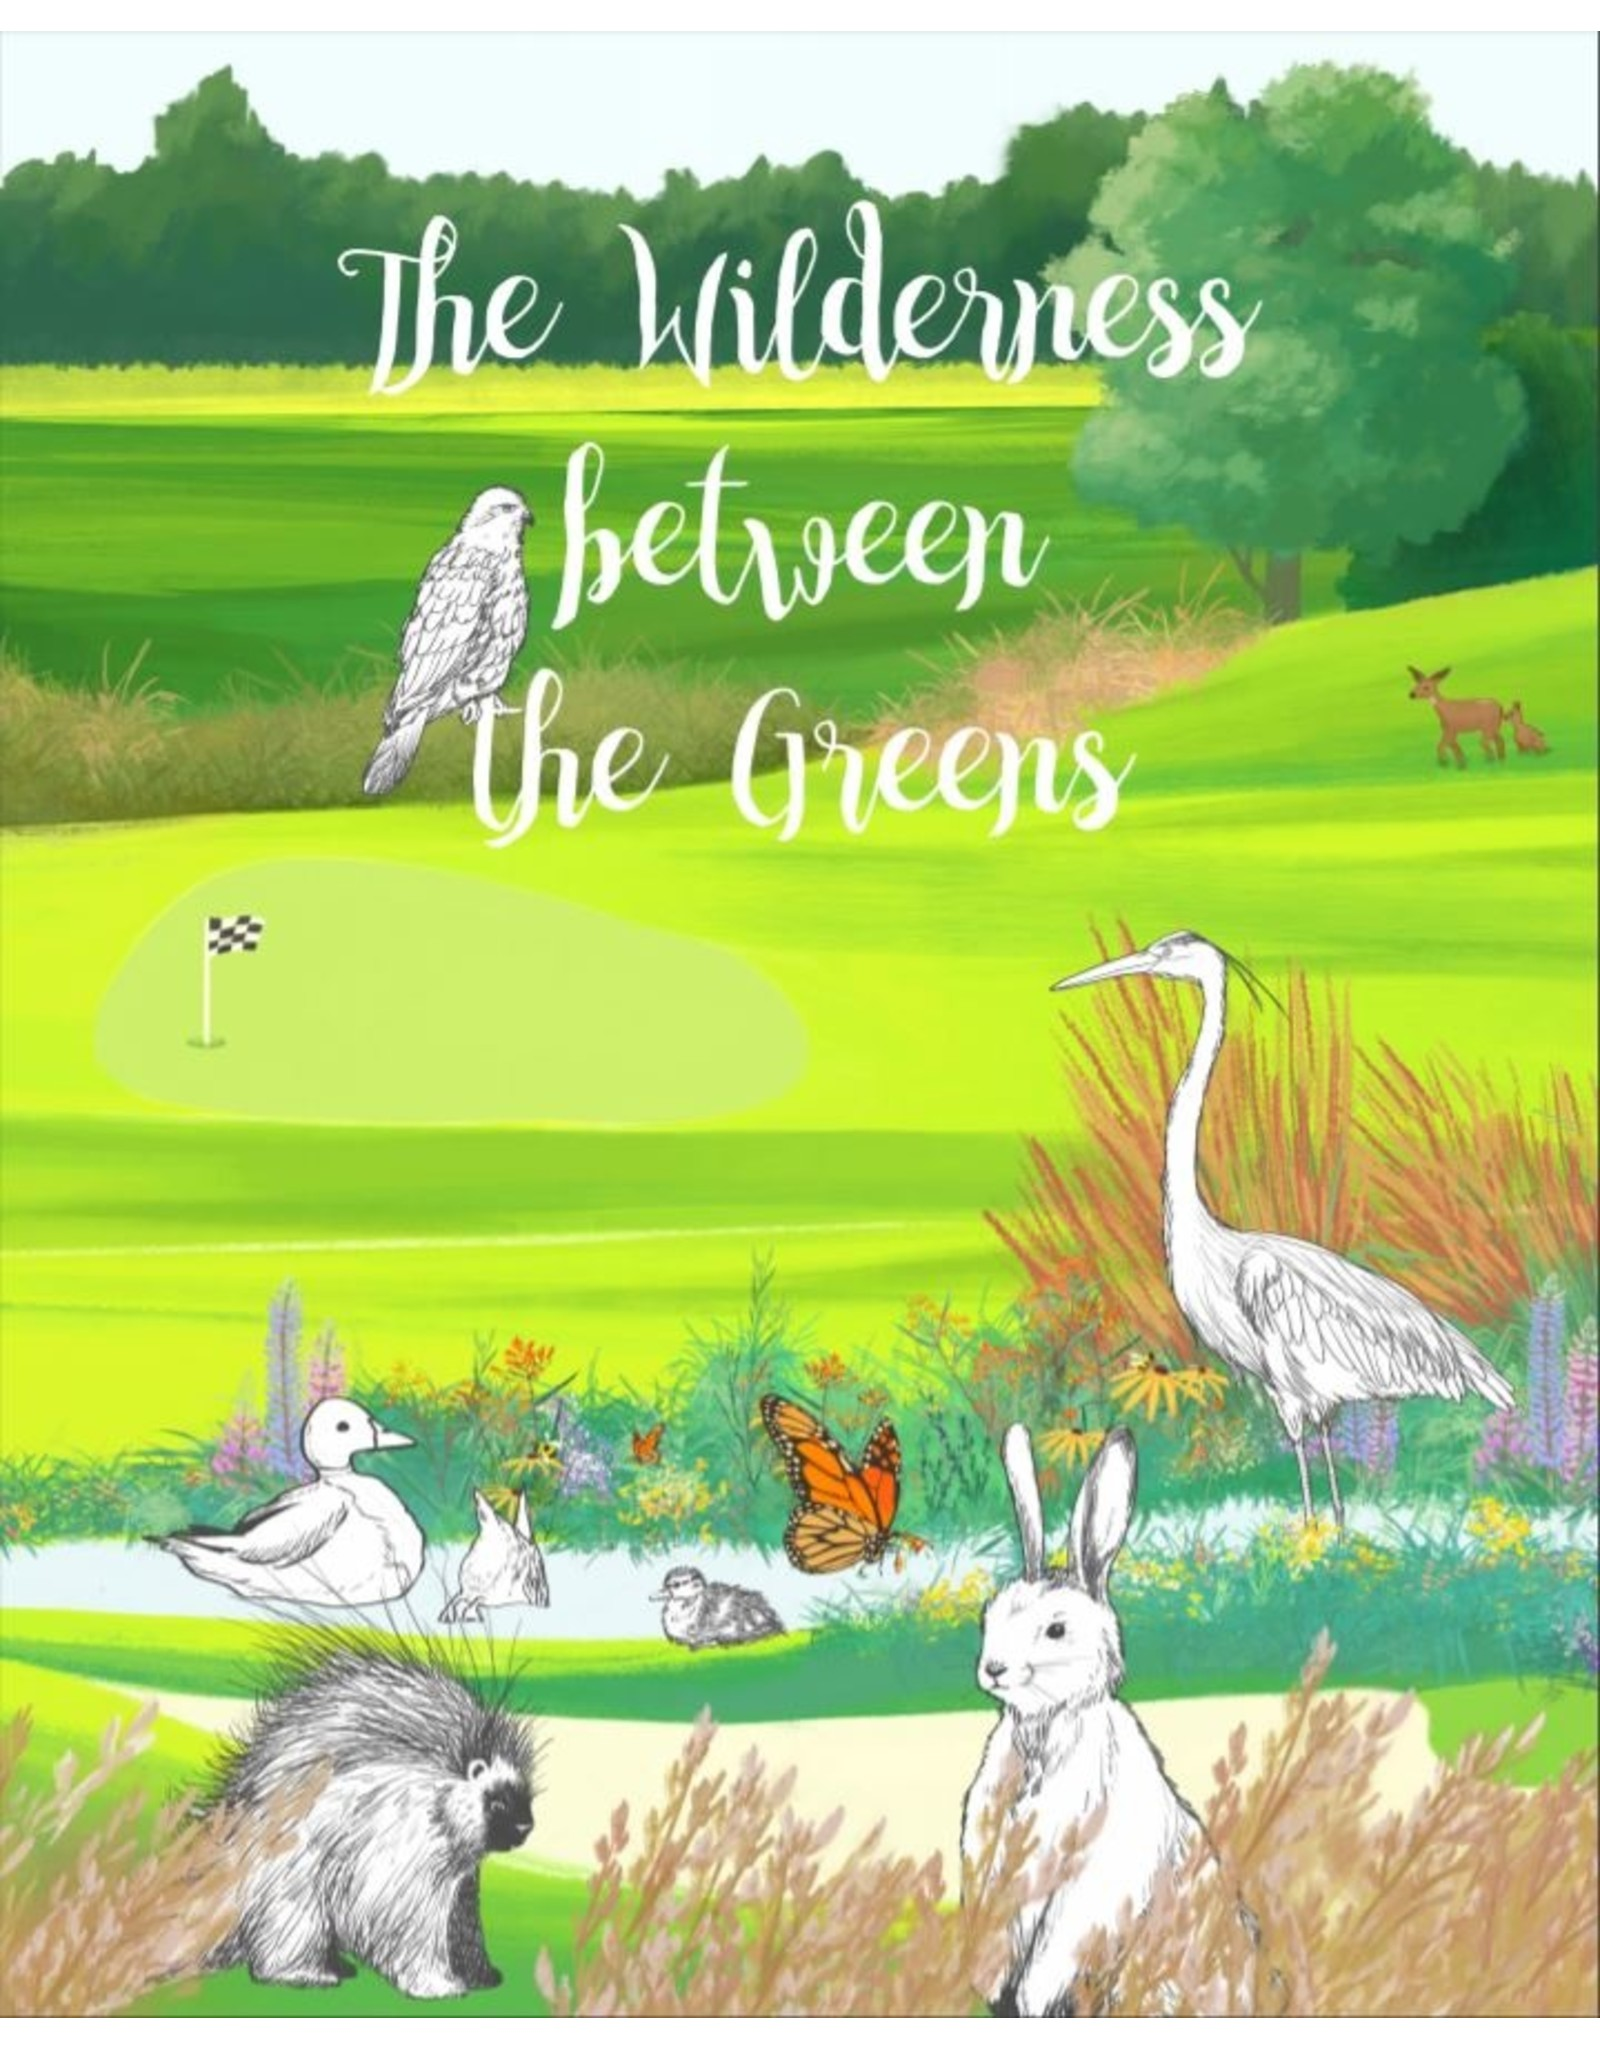 The Wilderness Between the Greens